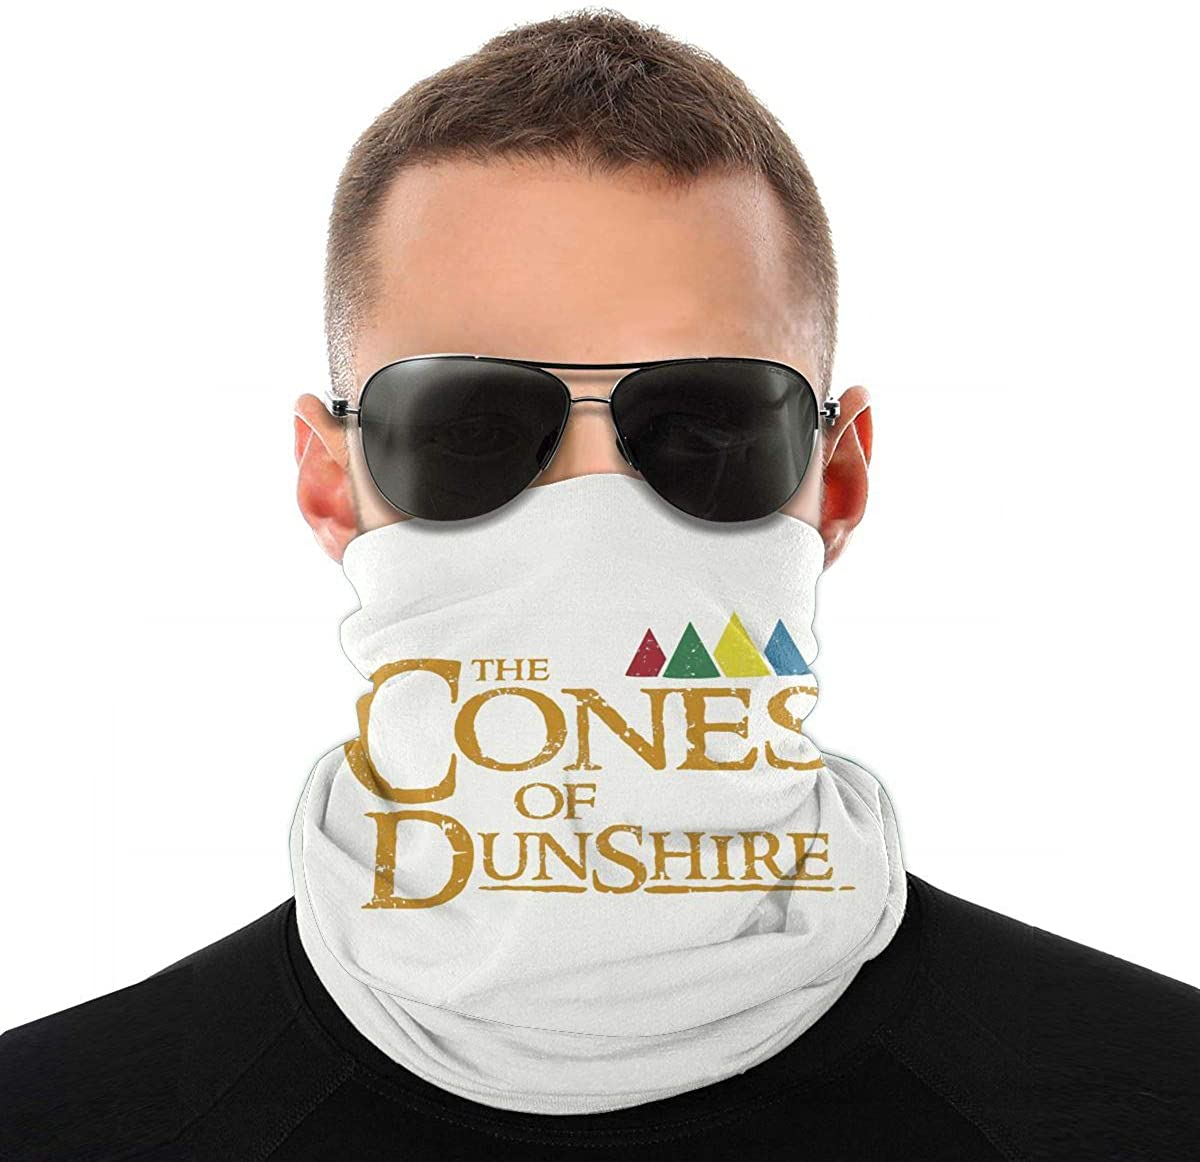 Cones Of Dunshire Headscarf Face Mask Dustproof And Windproof